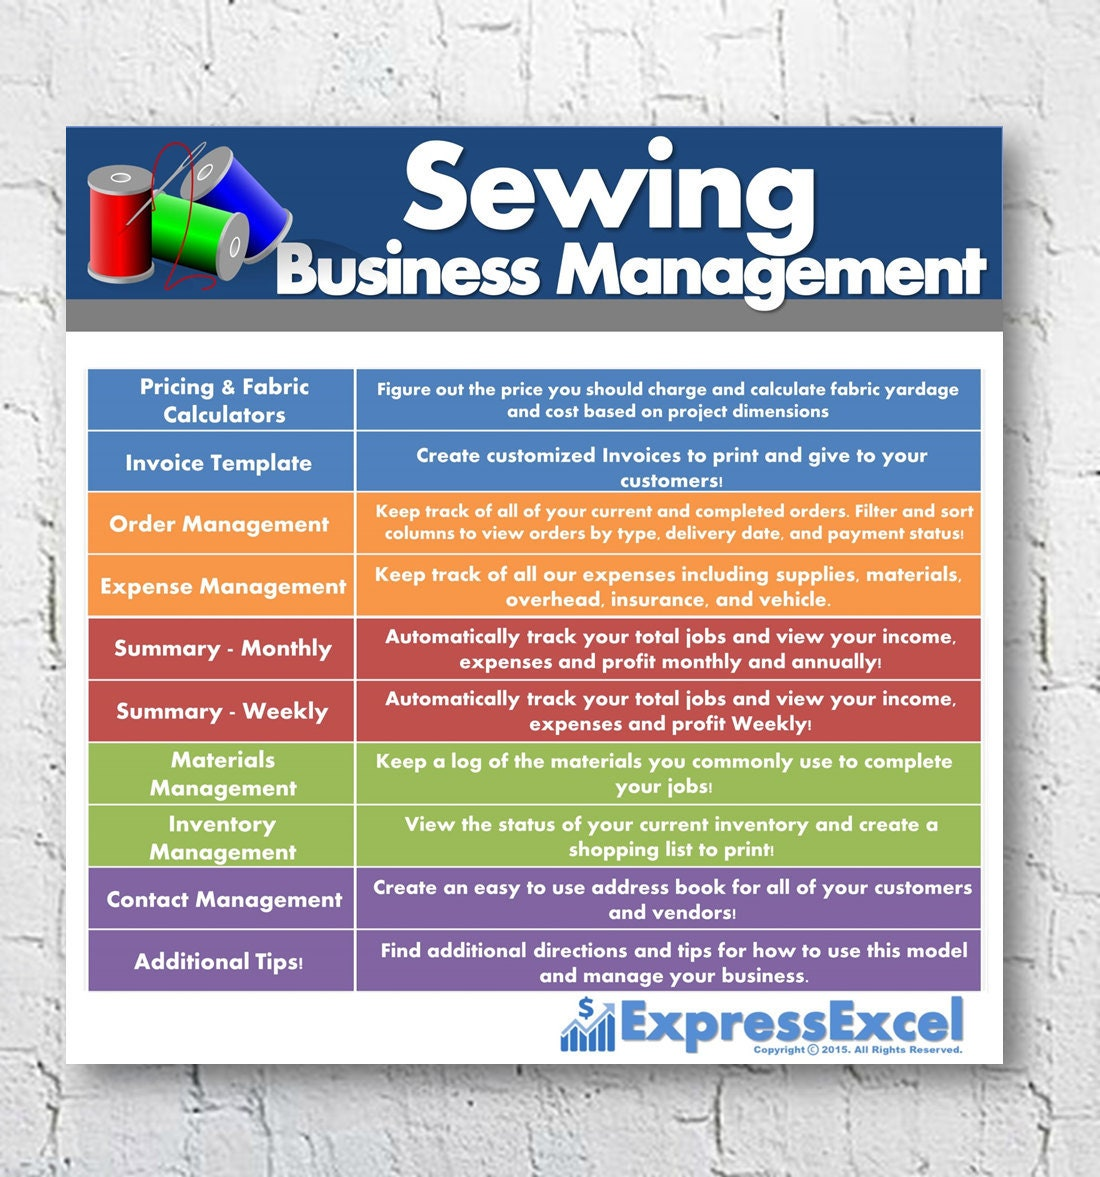 Sewing Alterations Business Management Software Order Etsy - Free templates for invoices printable women's clothing stores online